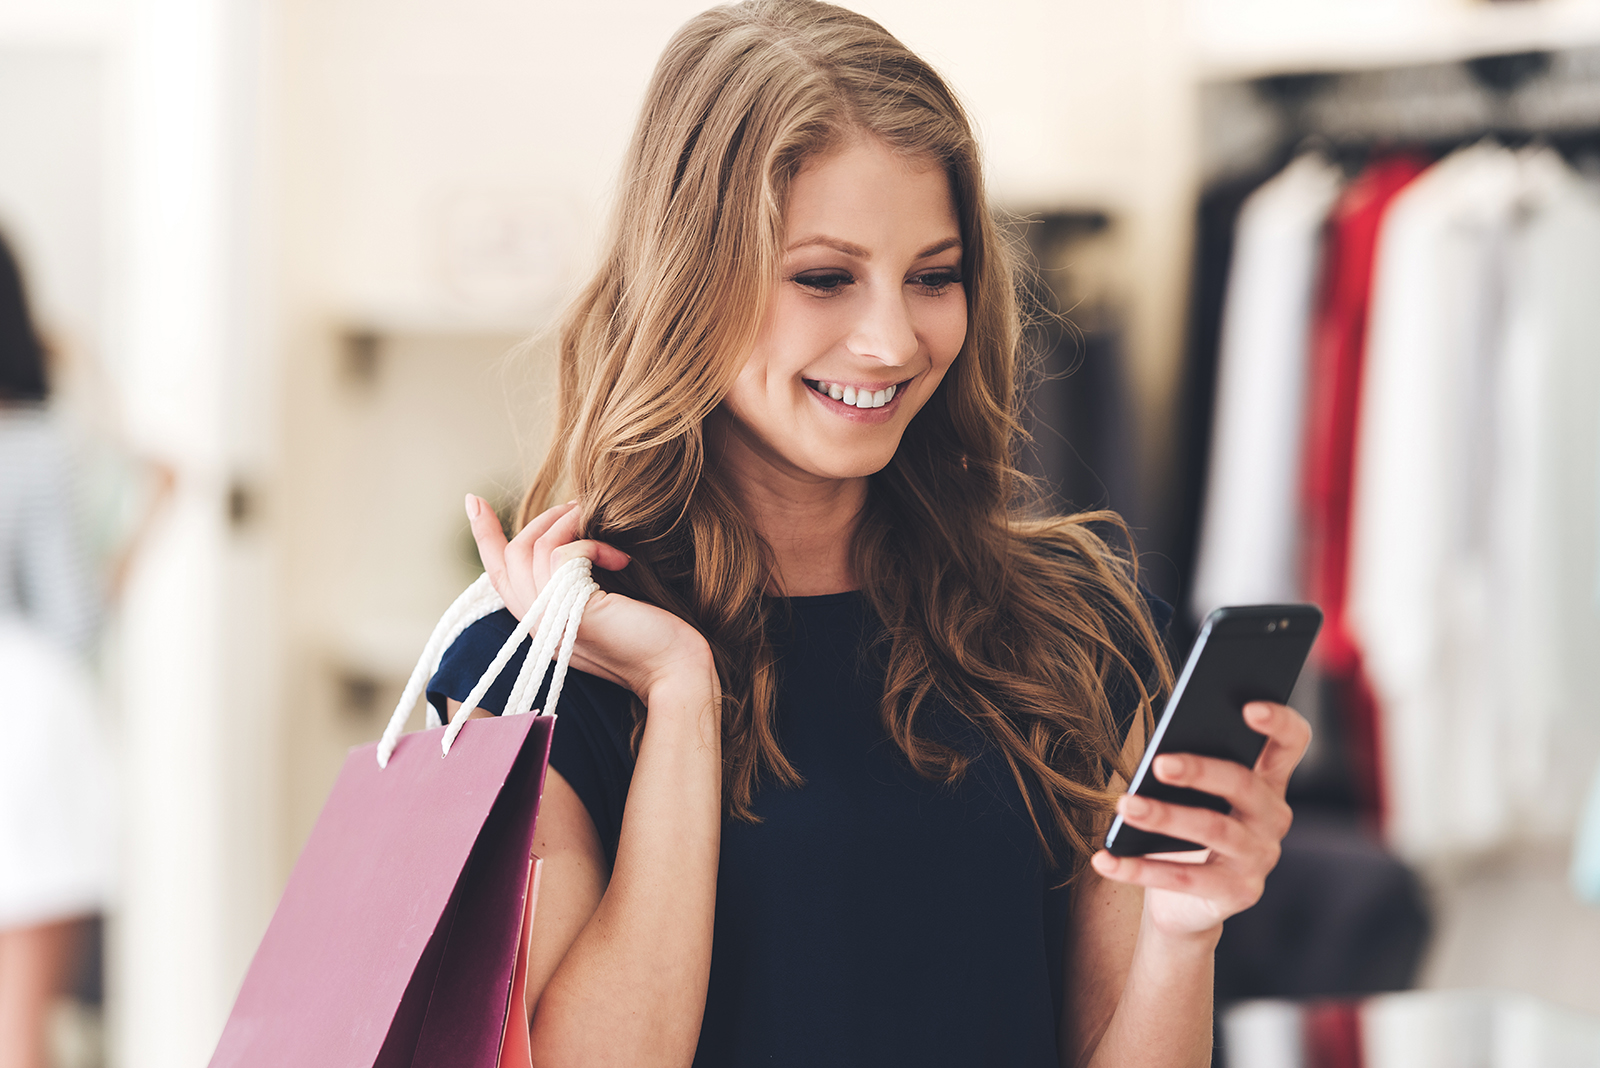 Girl_Shopping_with_Phone1